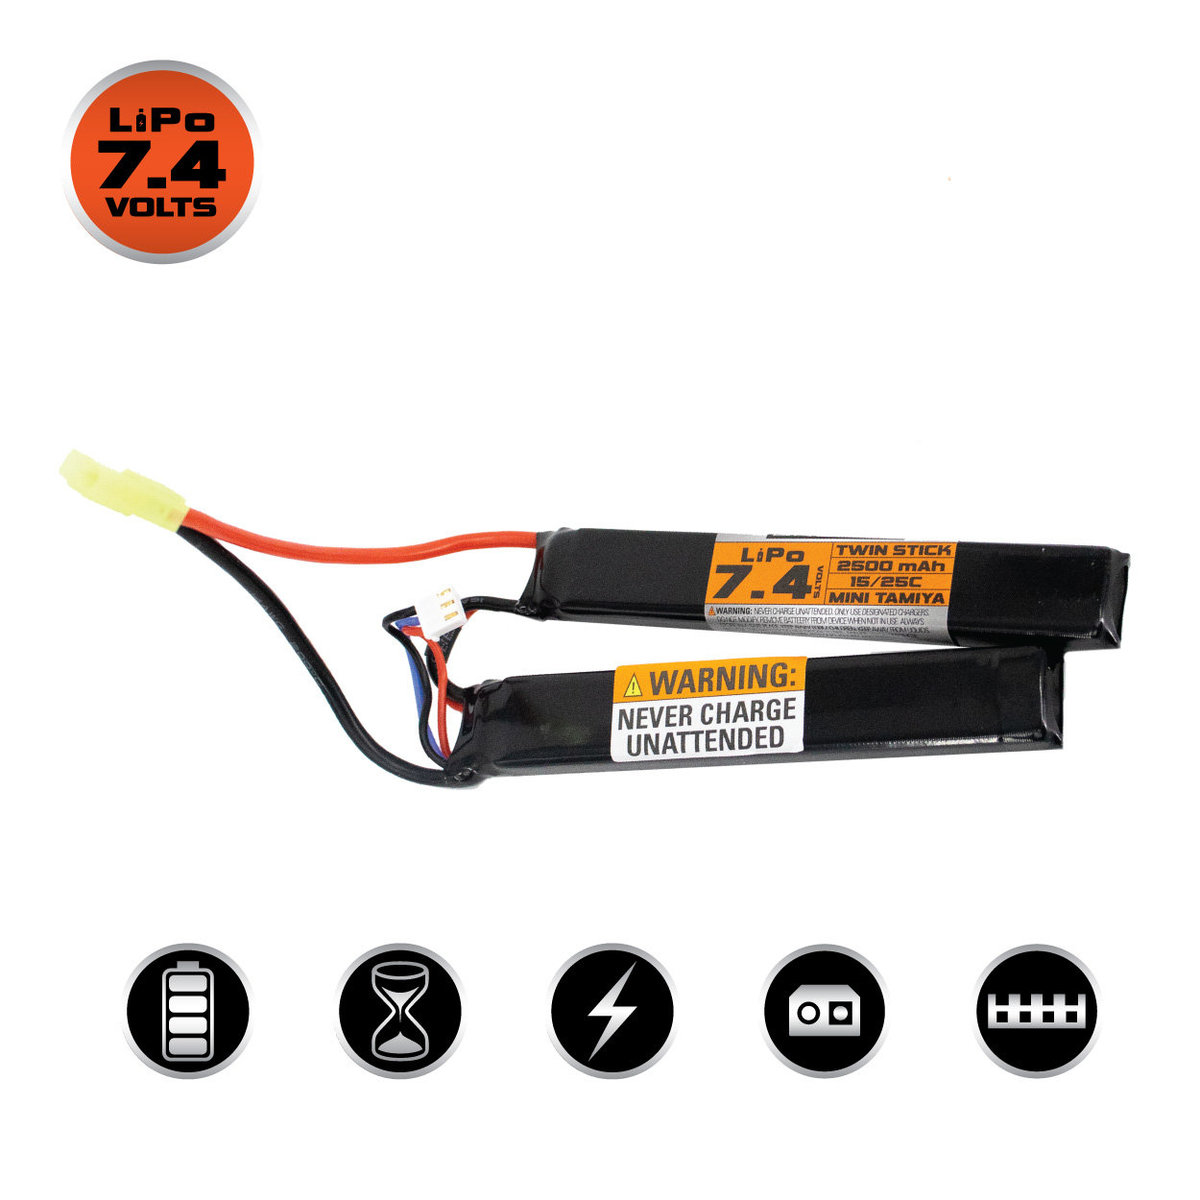 View larger image of Valken Lipo 7.4v 2500mAh 15/25C Split (Small Tamiya)